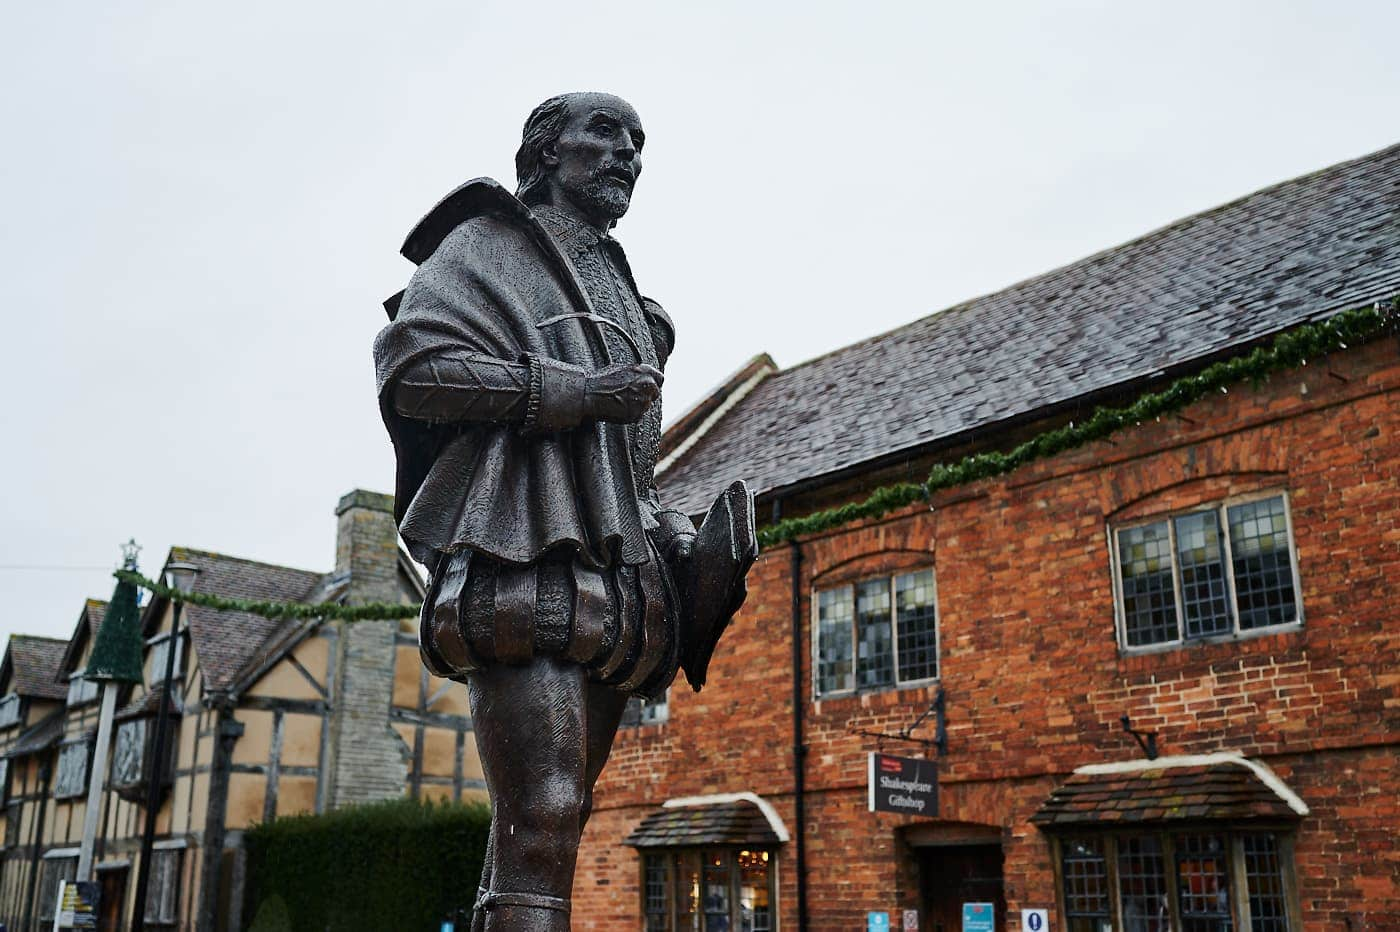 Statue of William Shakespeare in Stratford-upon-Avon on a rainy day